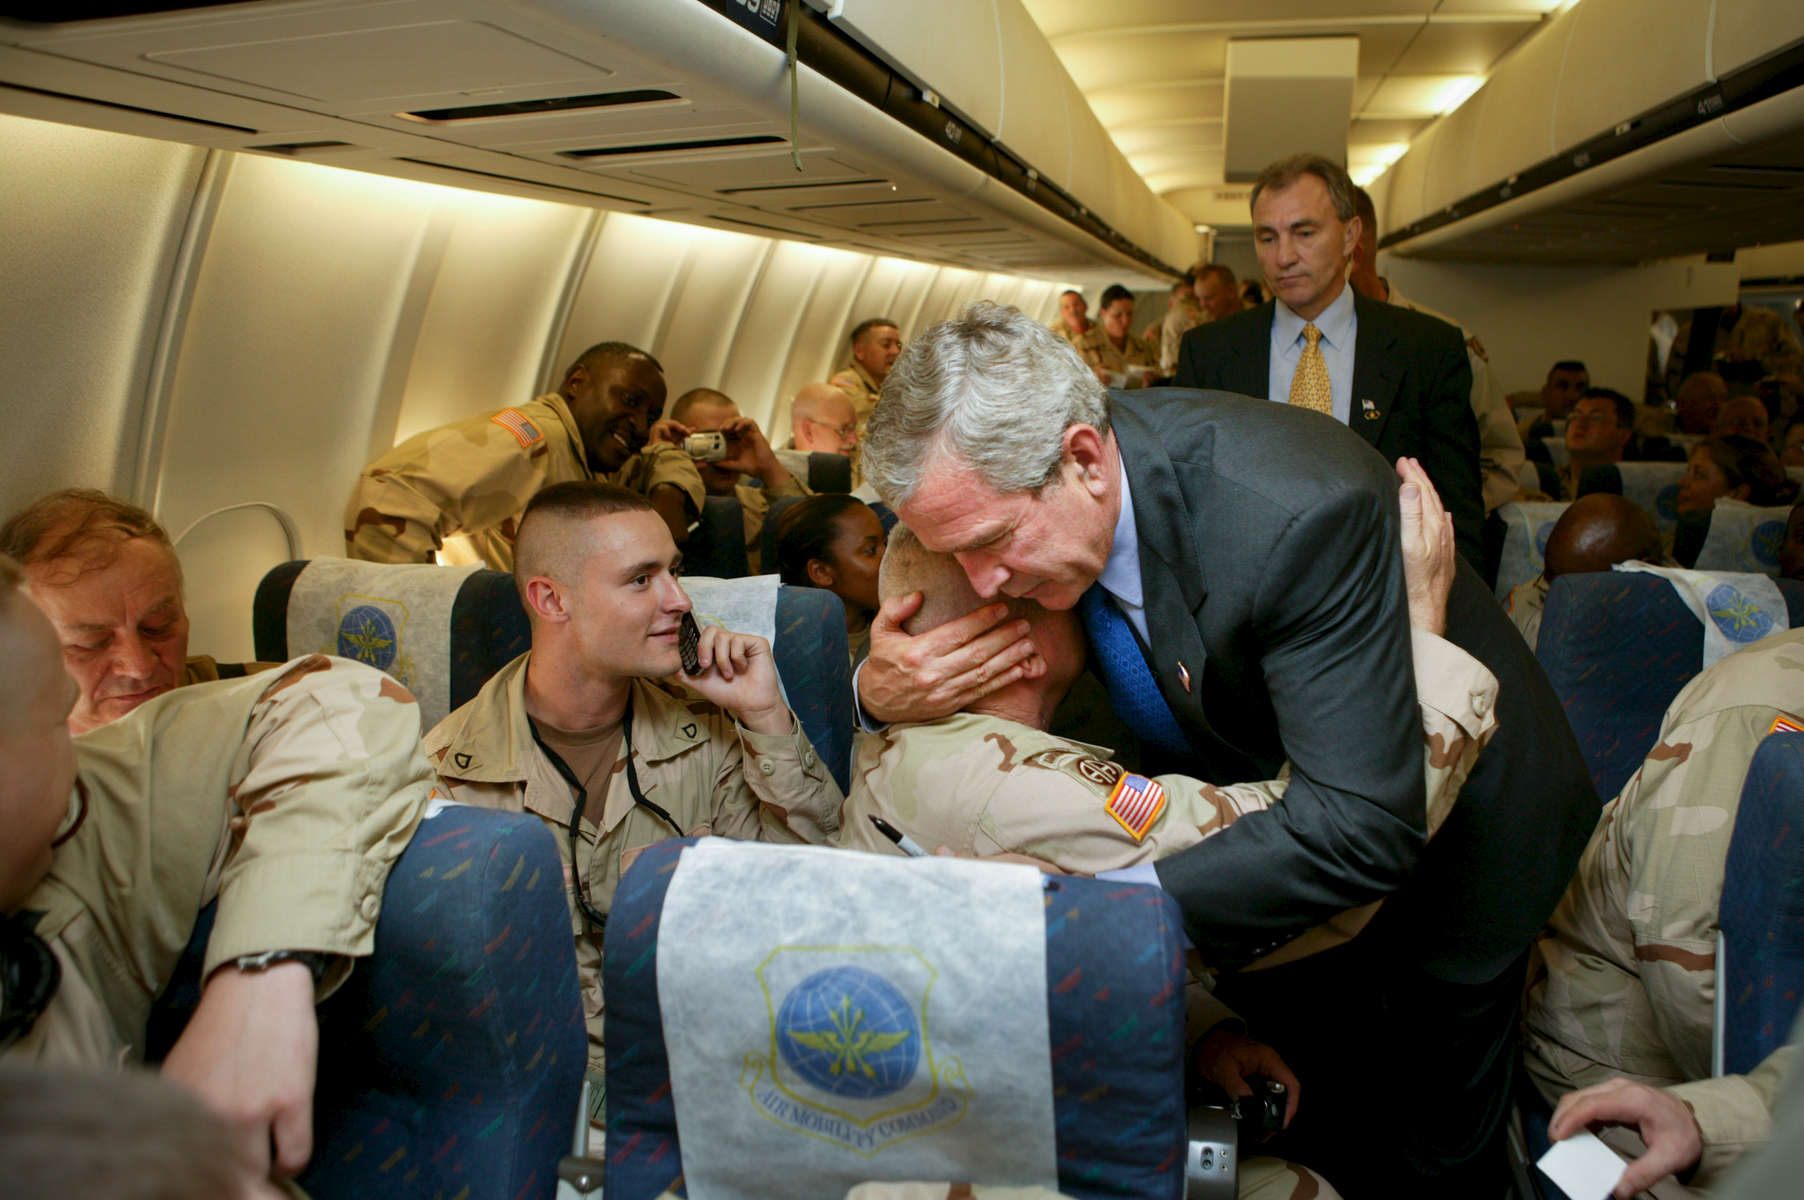 Digital: GWB 17:10 OTR at Bangor International Airport, Bangor, Maine. President Bush visits elements of the  30th National Guard Brigade Combat Team, 230th National Guard Area Support Group, and 414th Army Transport Batallion on their way to Iraq during a refueling stop.